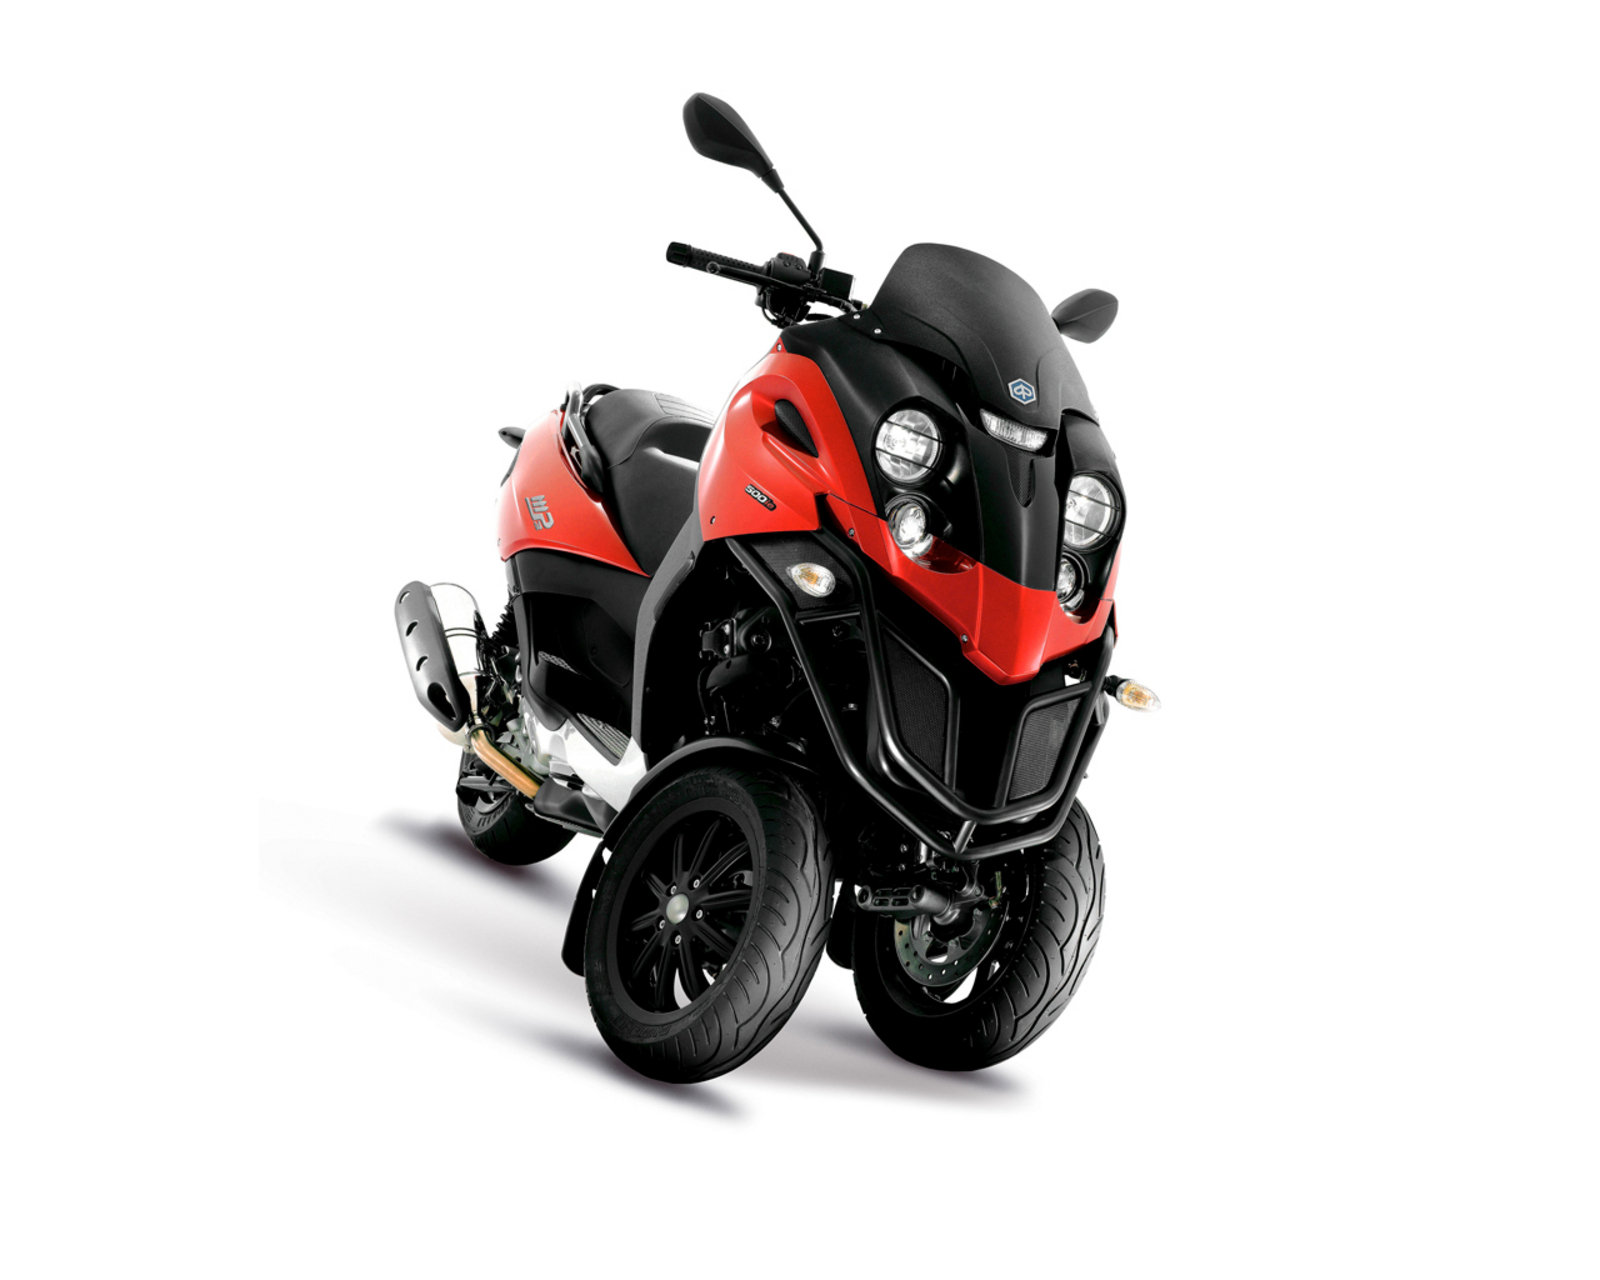 2012 piaggio mp3 500 review gallery top speed. Black Bedroom Furniture Sets. Home Design Ideas